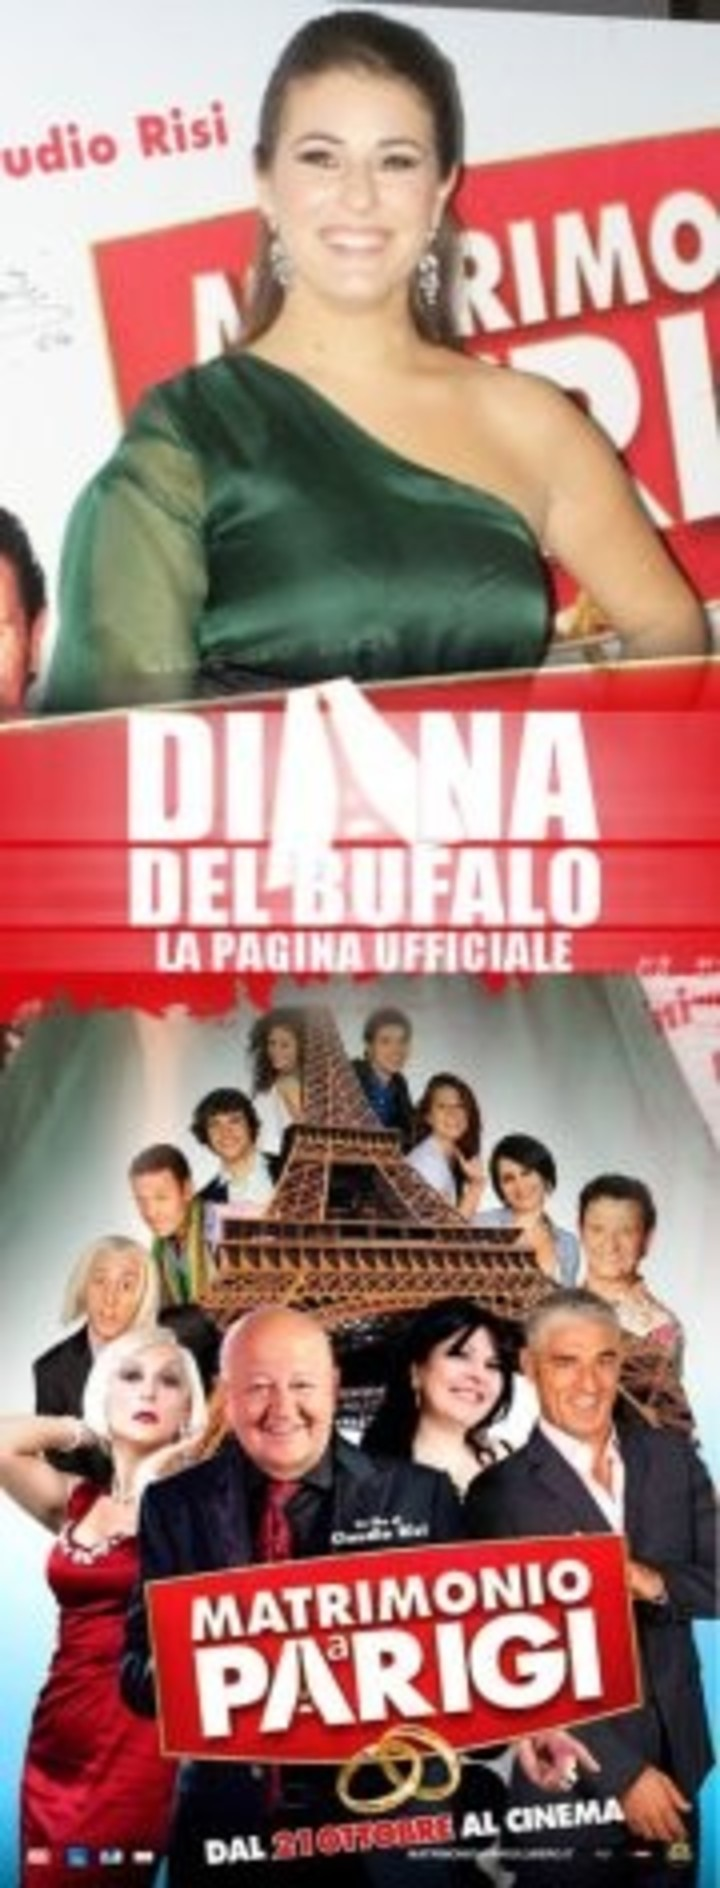 Diana Del Bufalo Tour Dates